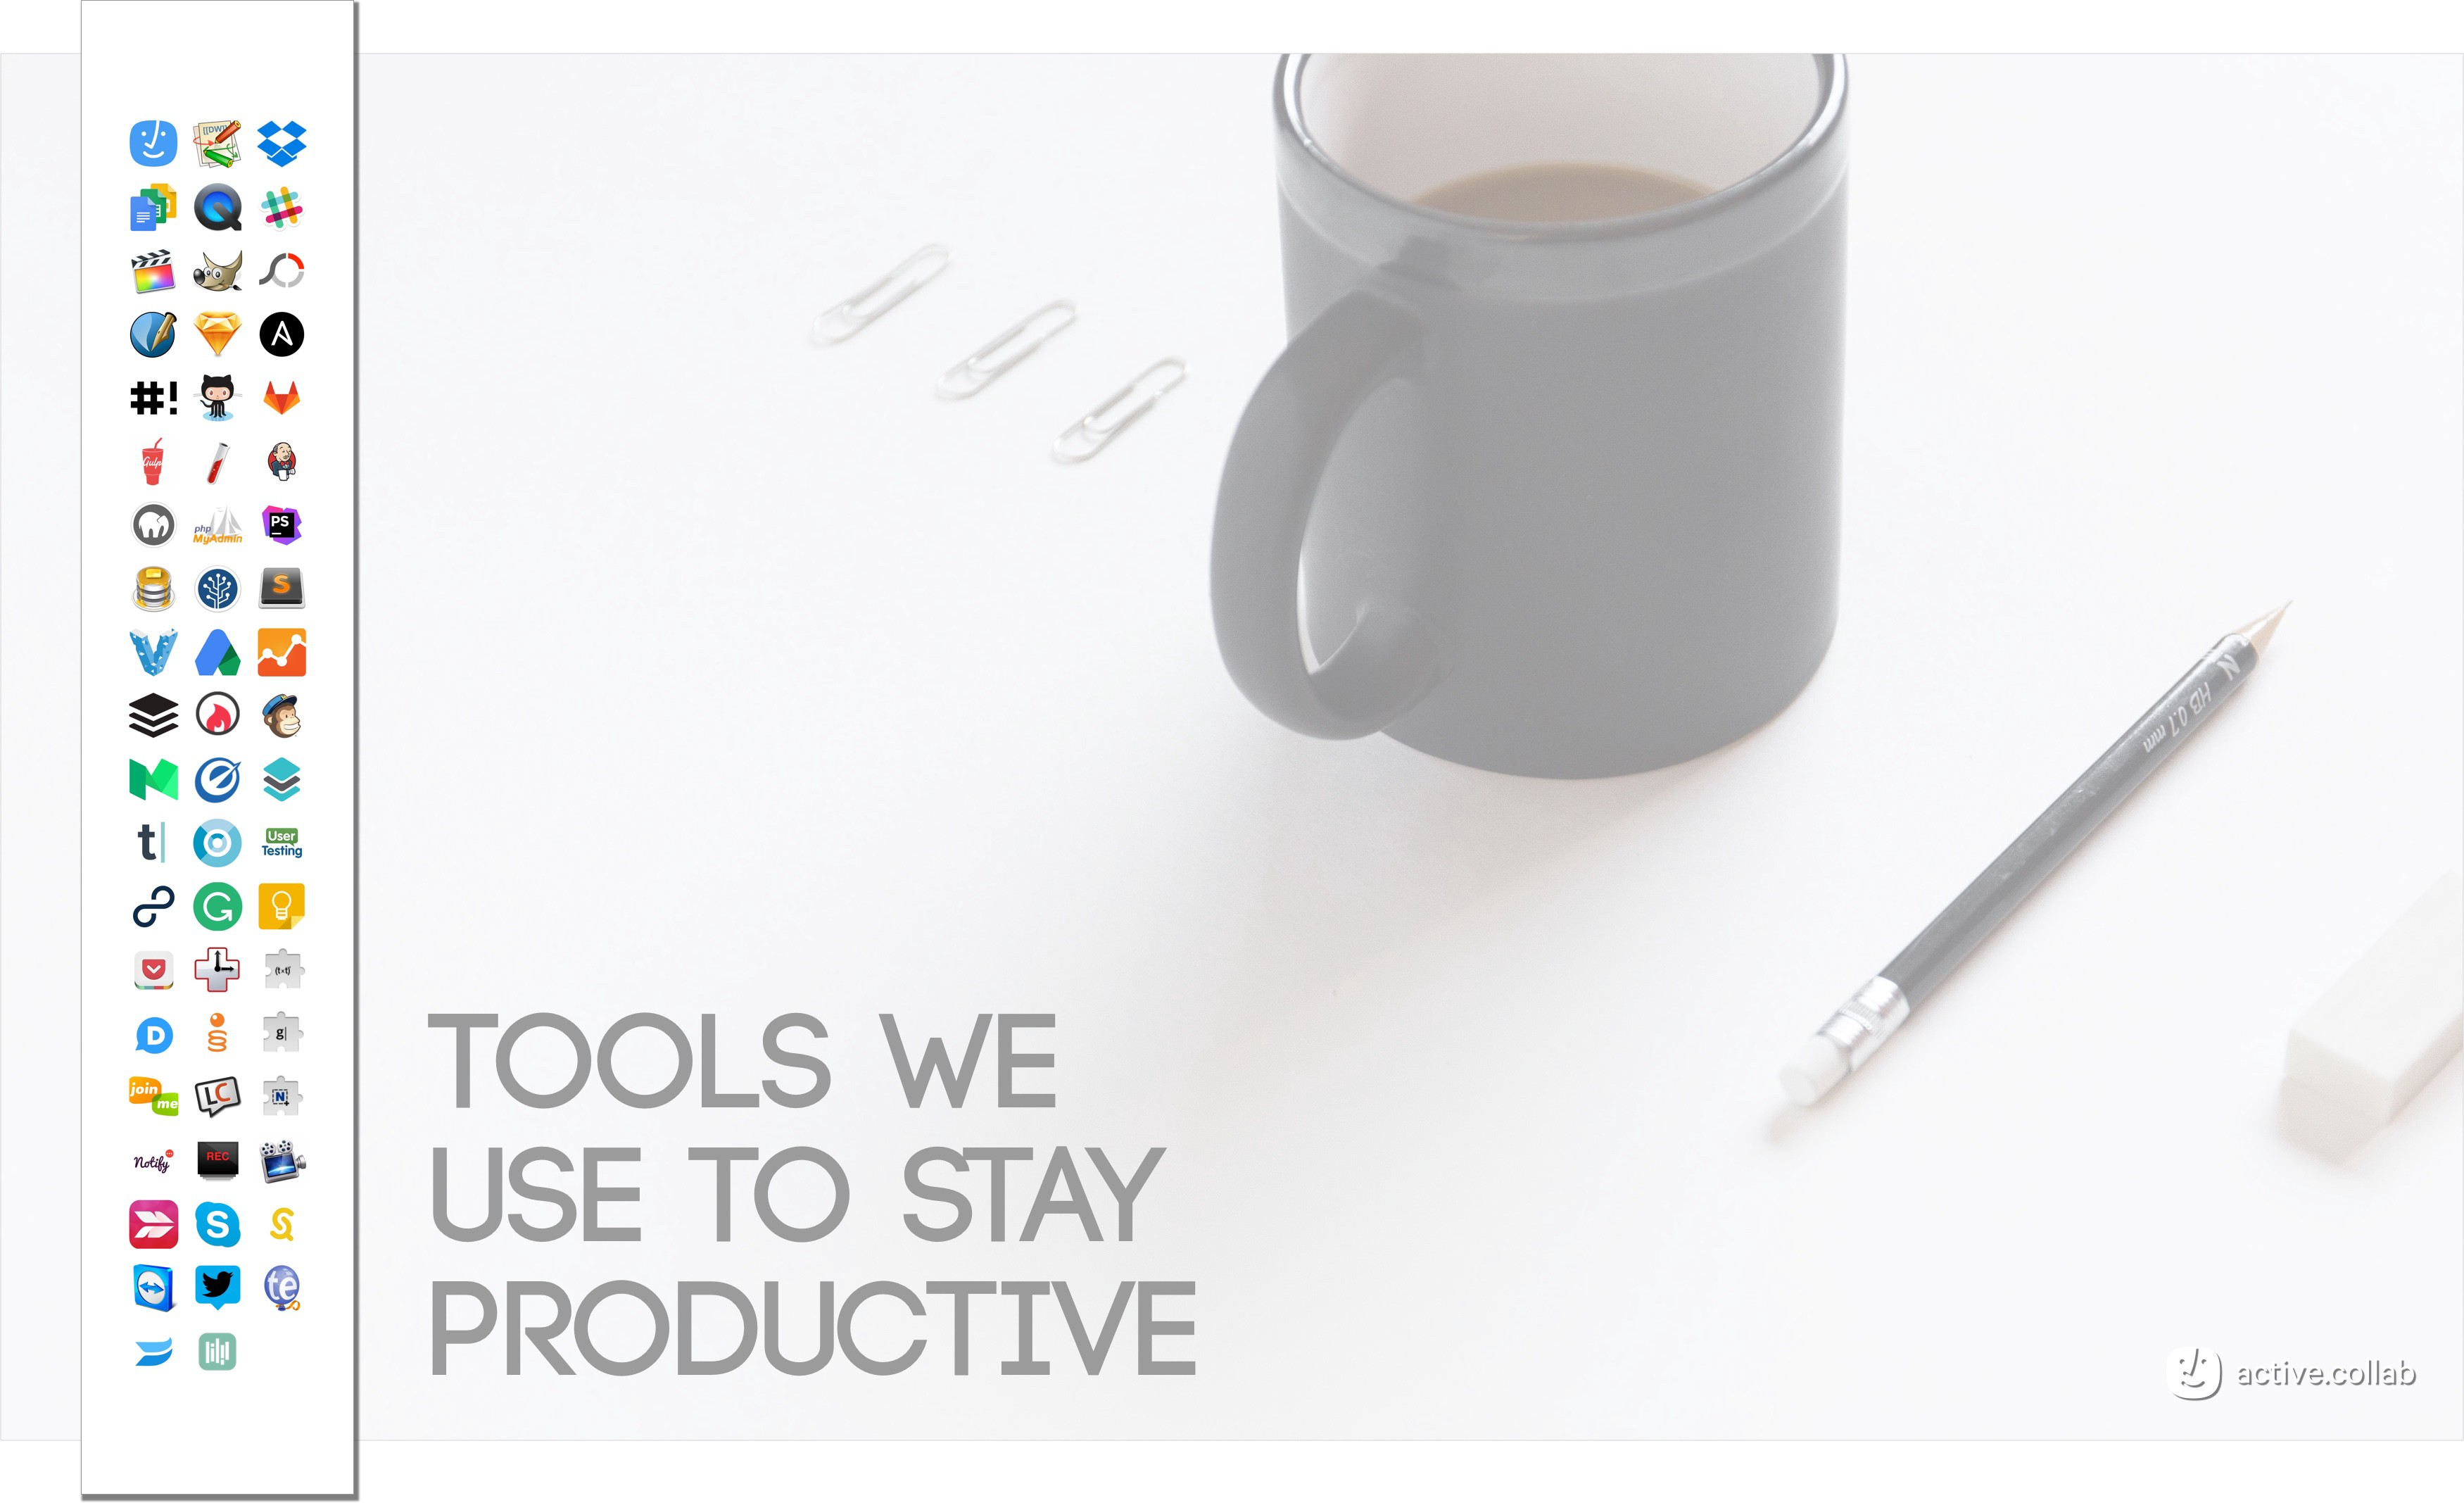 Activecollab 59 tools for running a successful business - activecollab